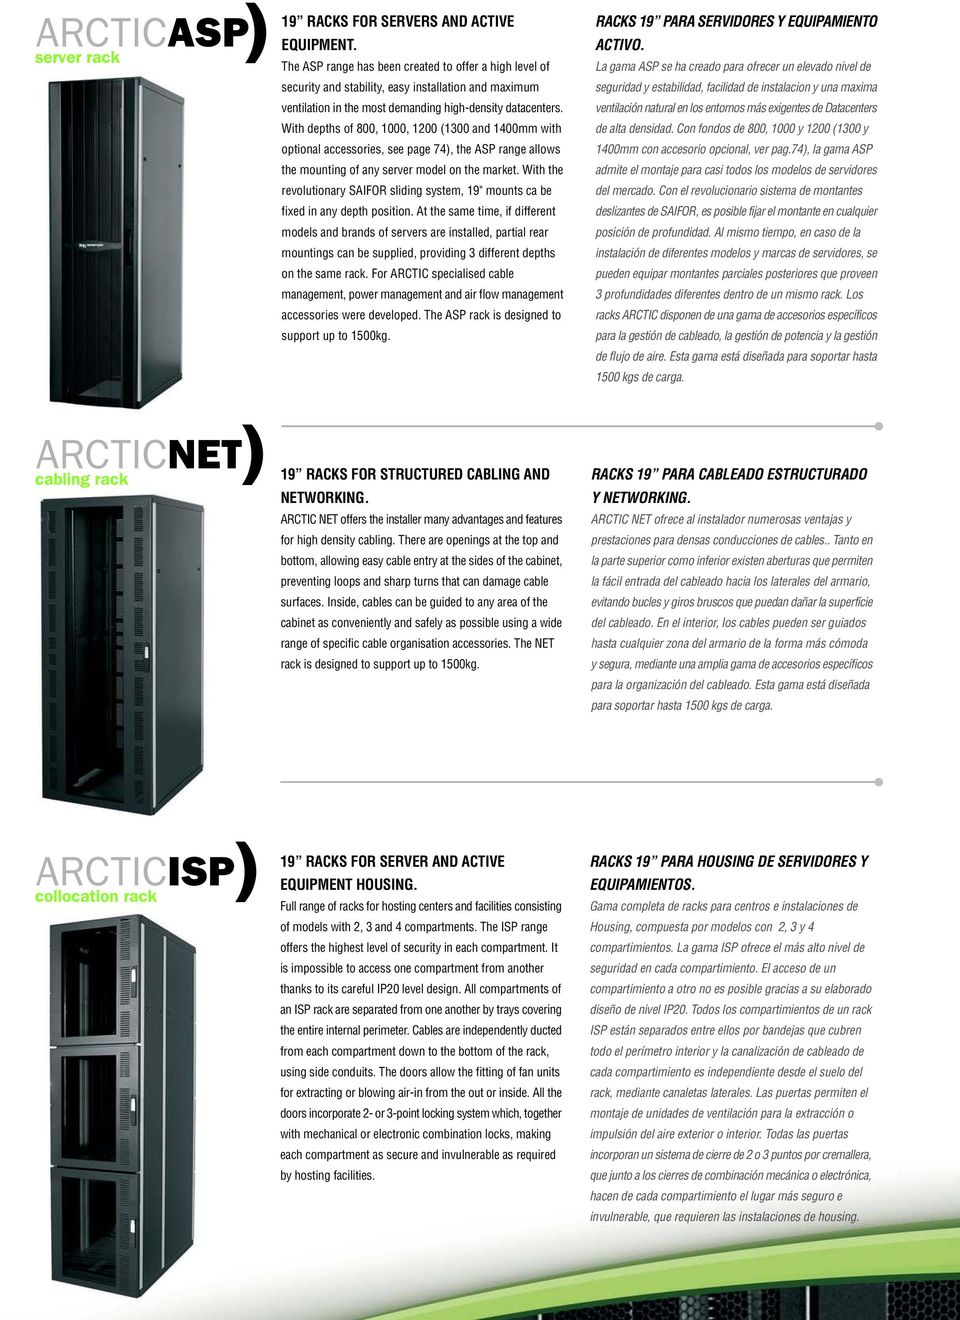 With depths of, 1000, 1200 (1300 and 1400mm with optional accessories, see page 74), the ASP range allows the mounting of any server model on the market.